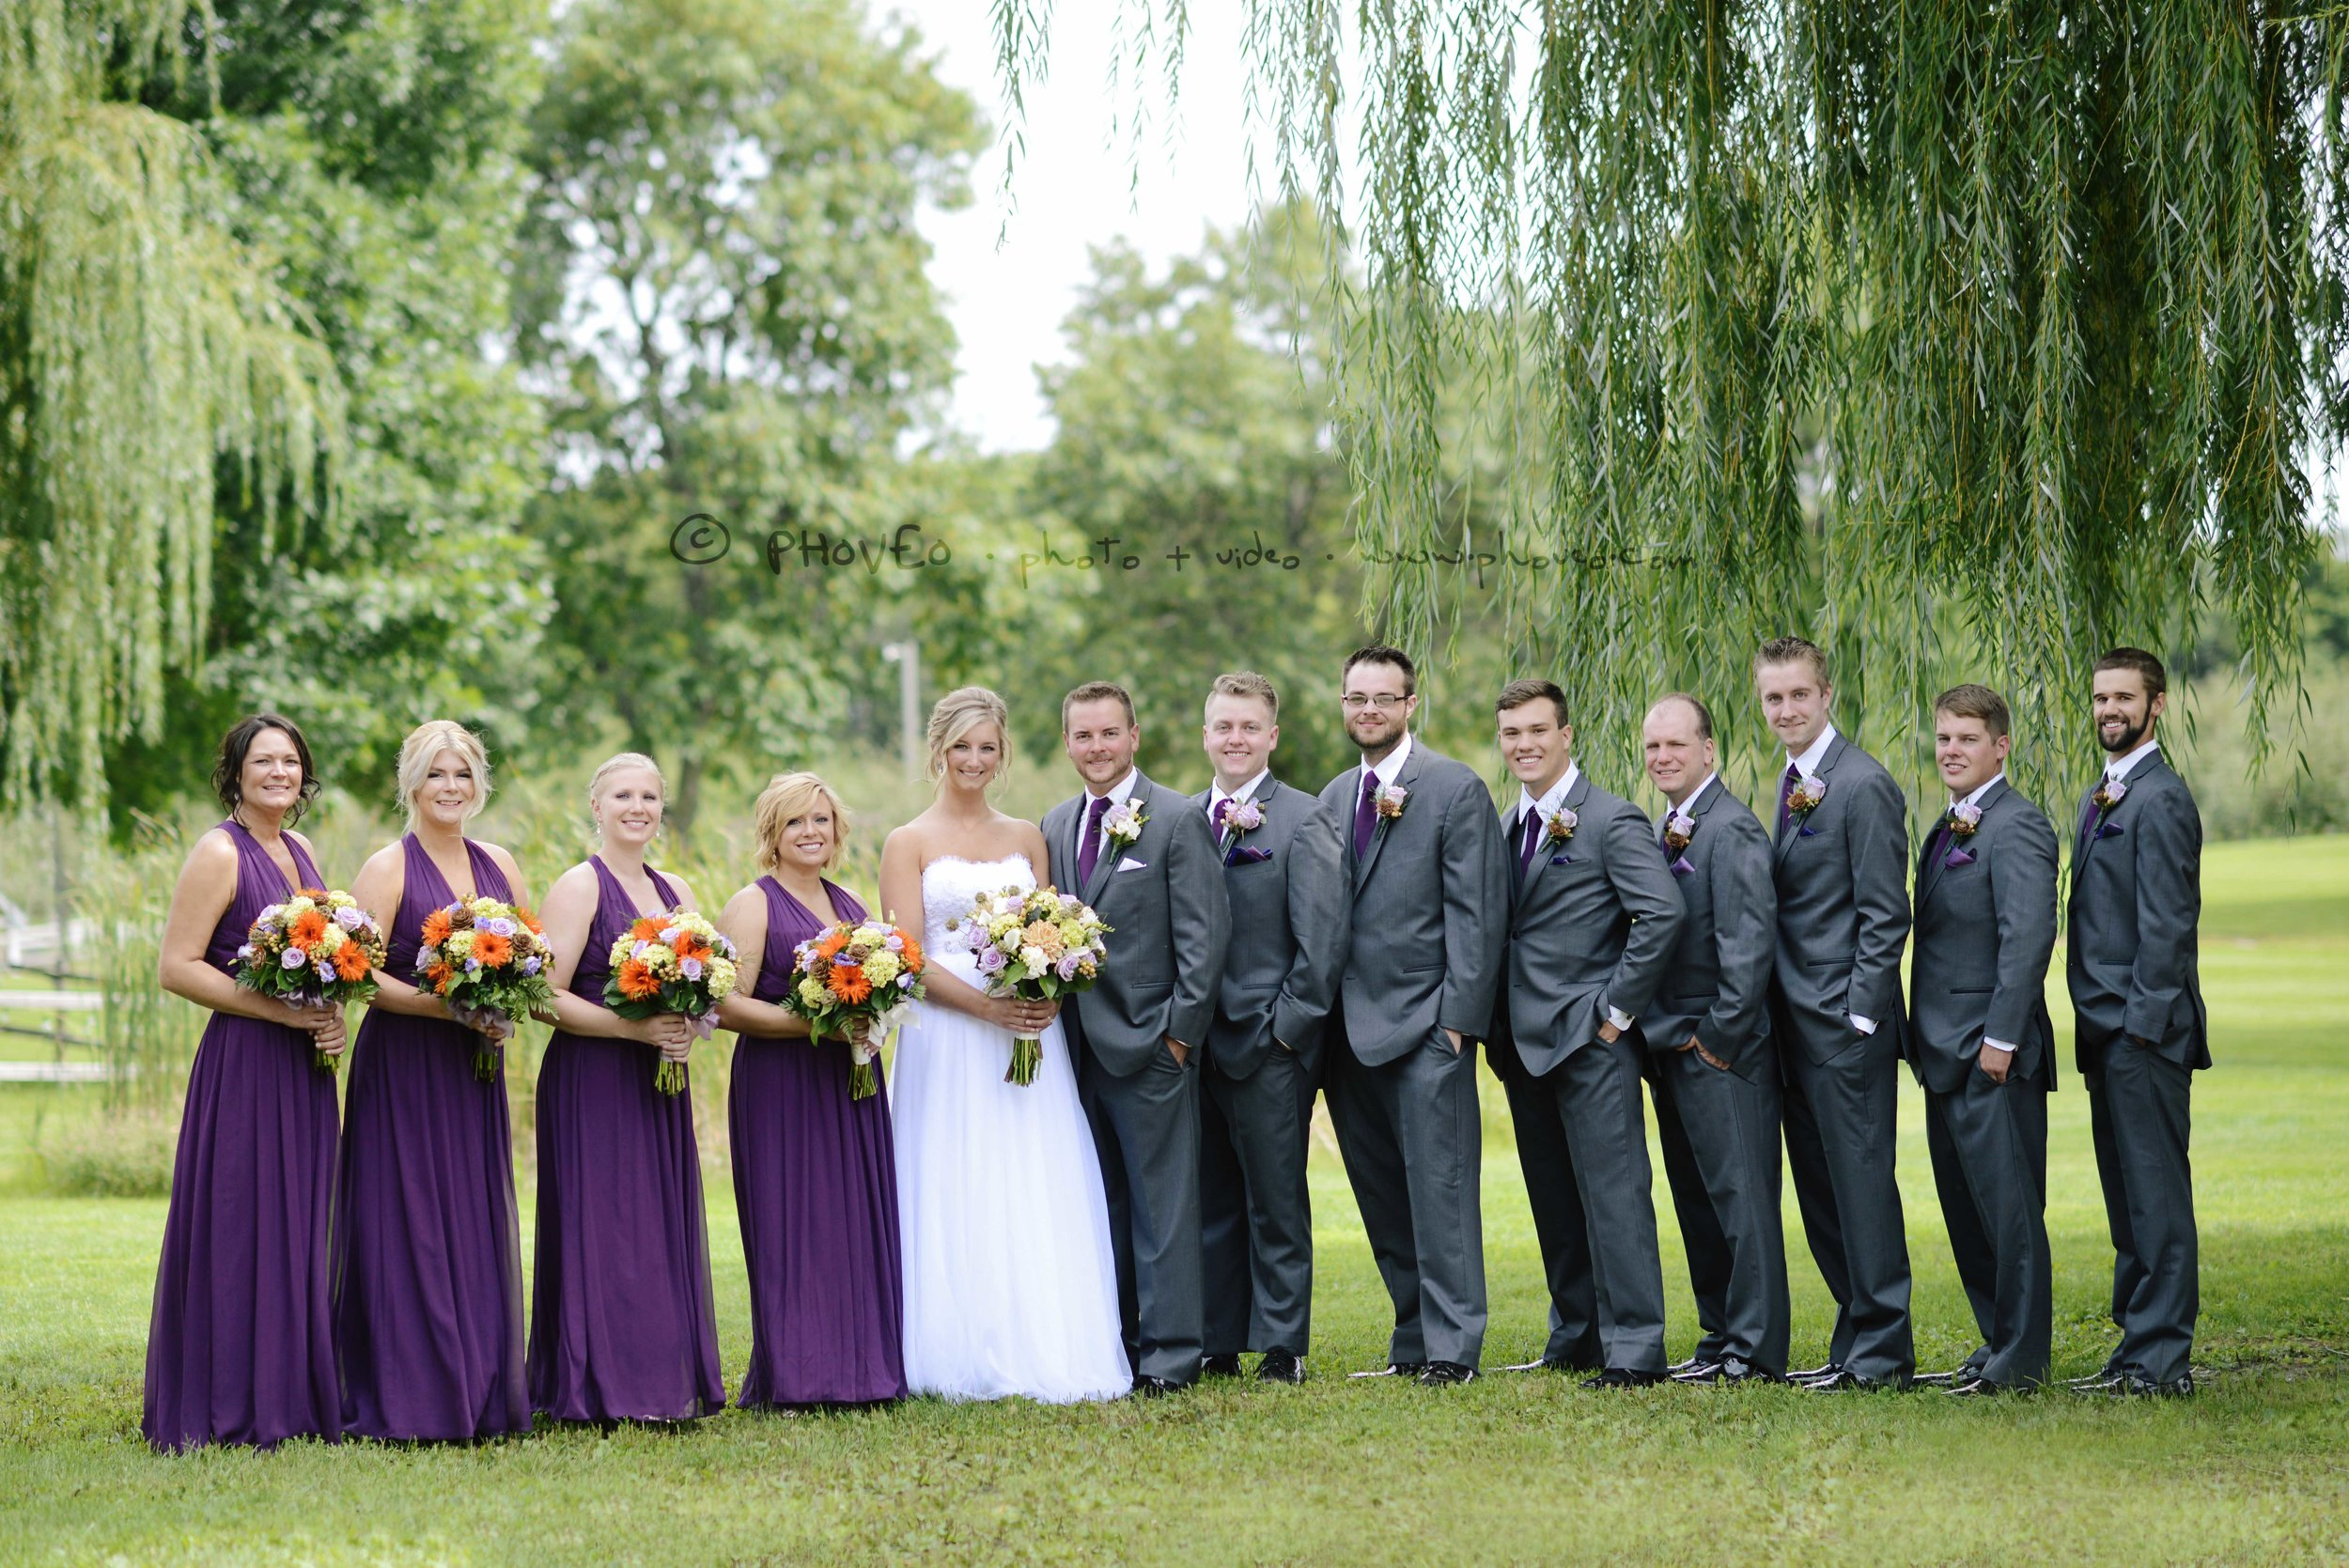 WM_20160826_Katelyn+Tony_143.jpg